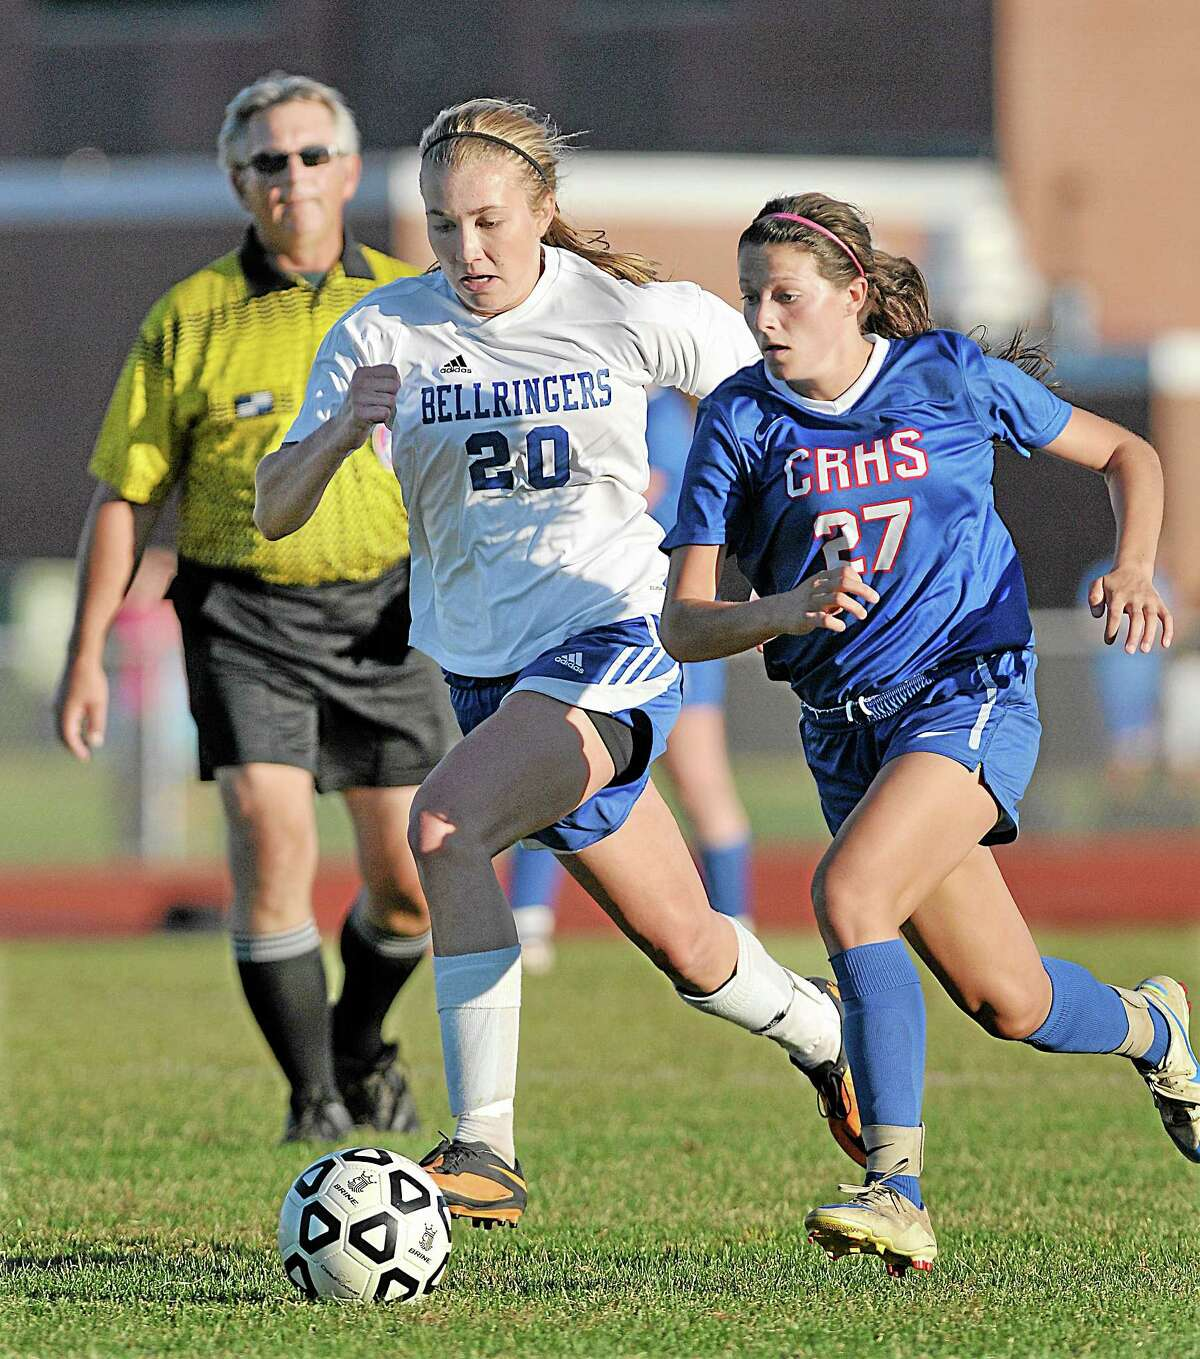 East Hampton's Meghan Orbann defends Coginchaug's Victoria Buonanni Monday afternoon in the Shoreline Conference game. The Bellringers defeated the Blue Devils 2-1 at home.